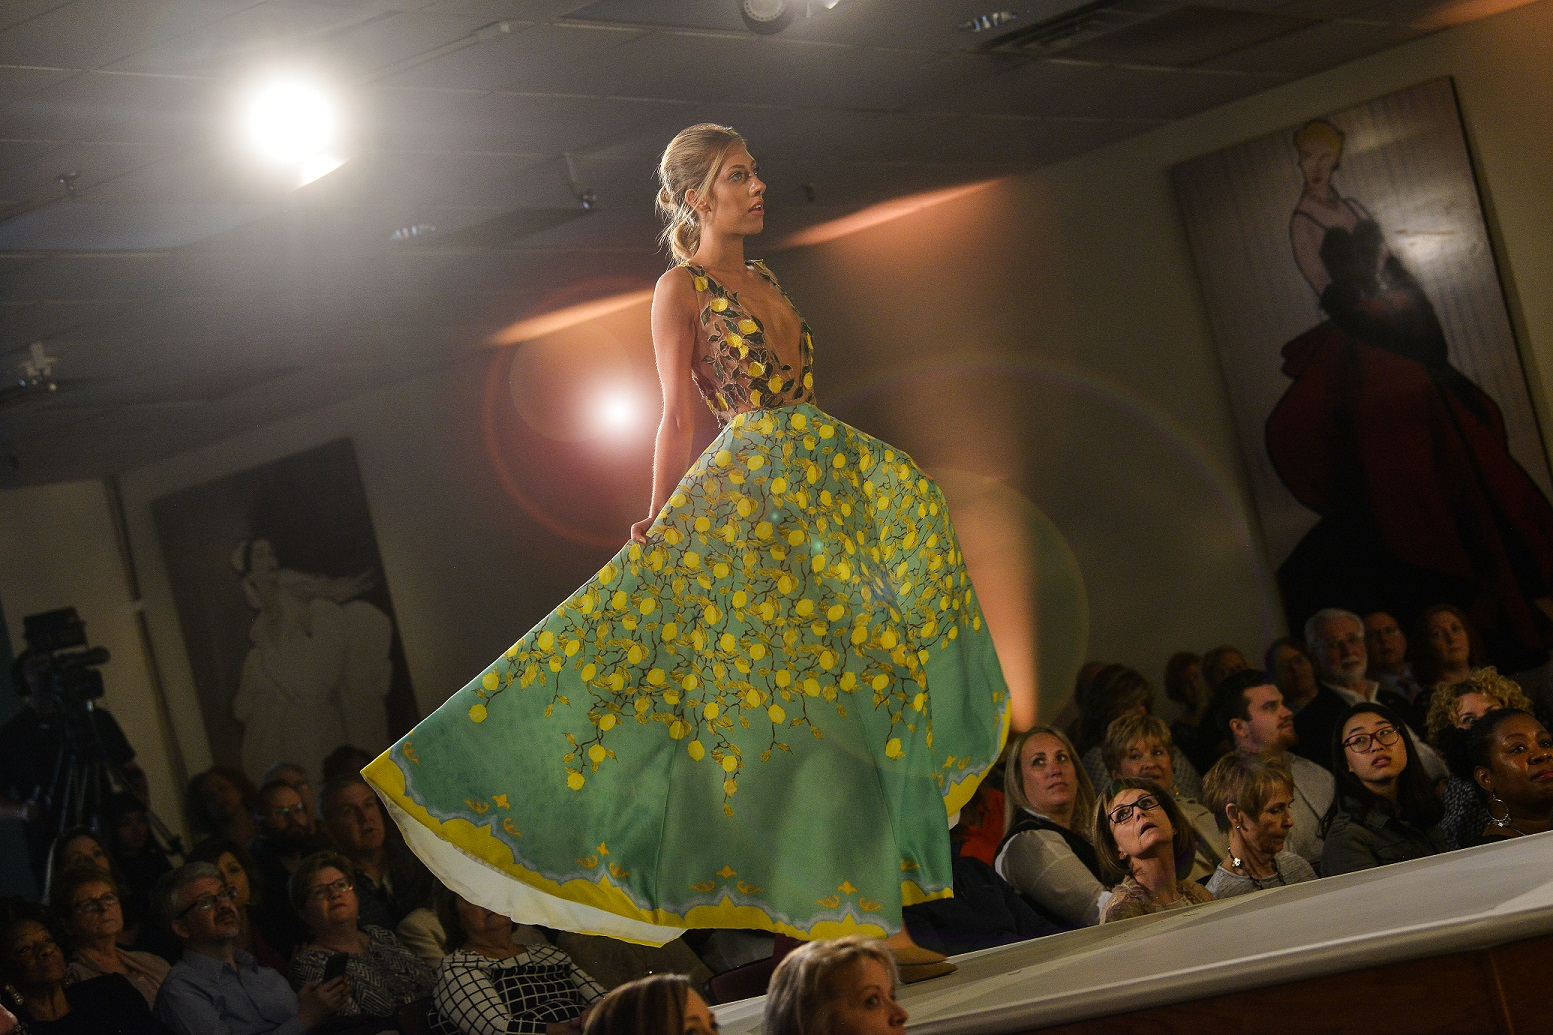 A model walks on the runway sporting a green and yellow gown during Kent State University's 2018 Annual Fashion Show.